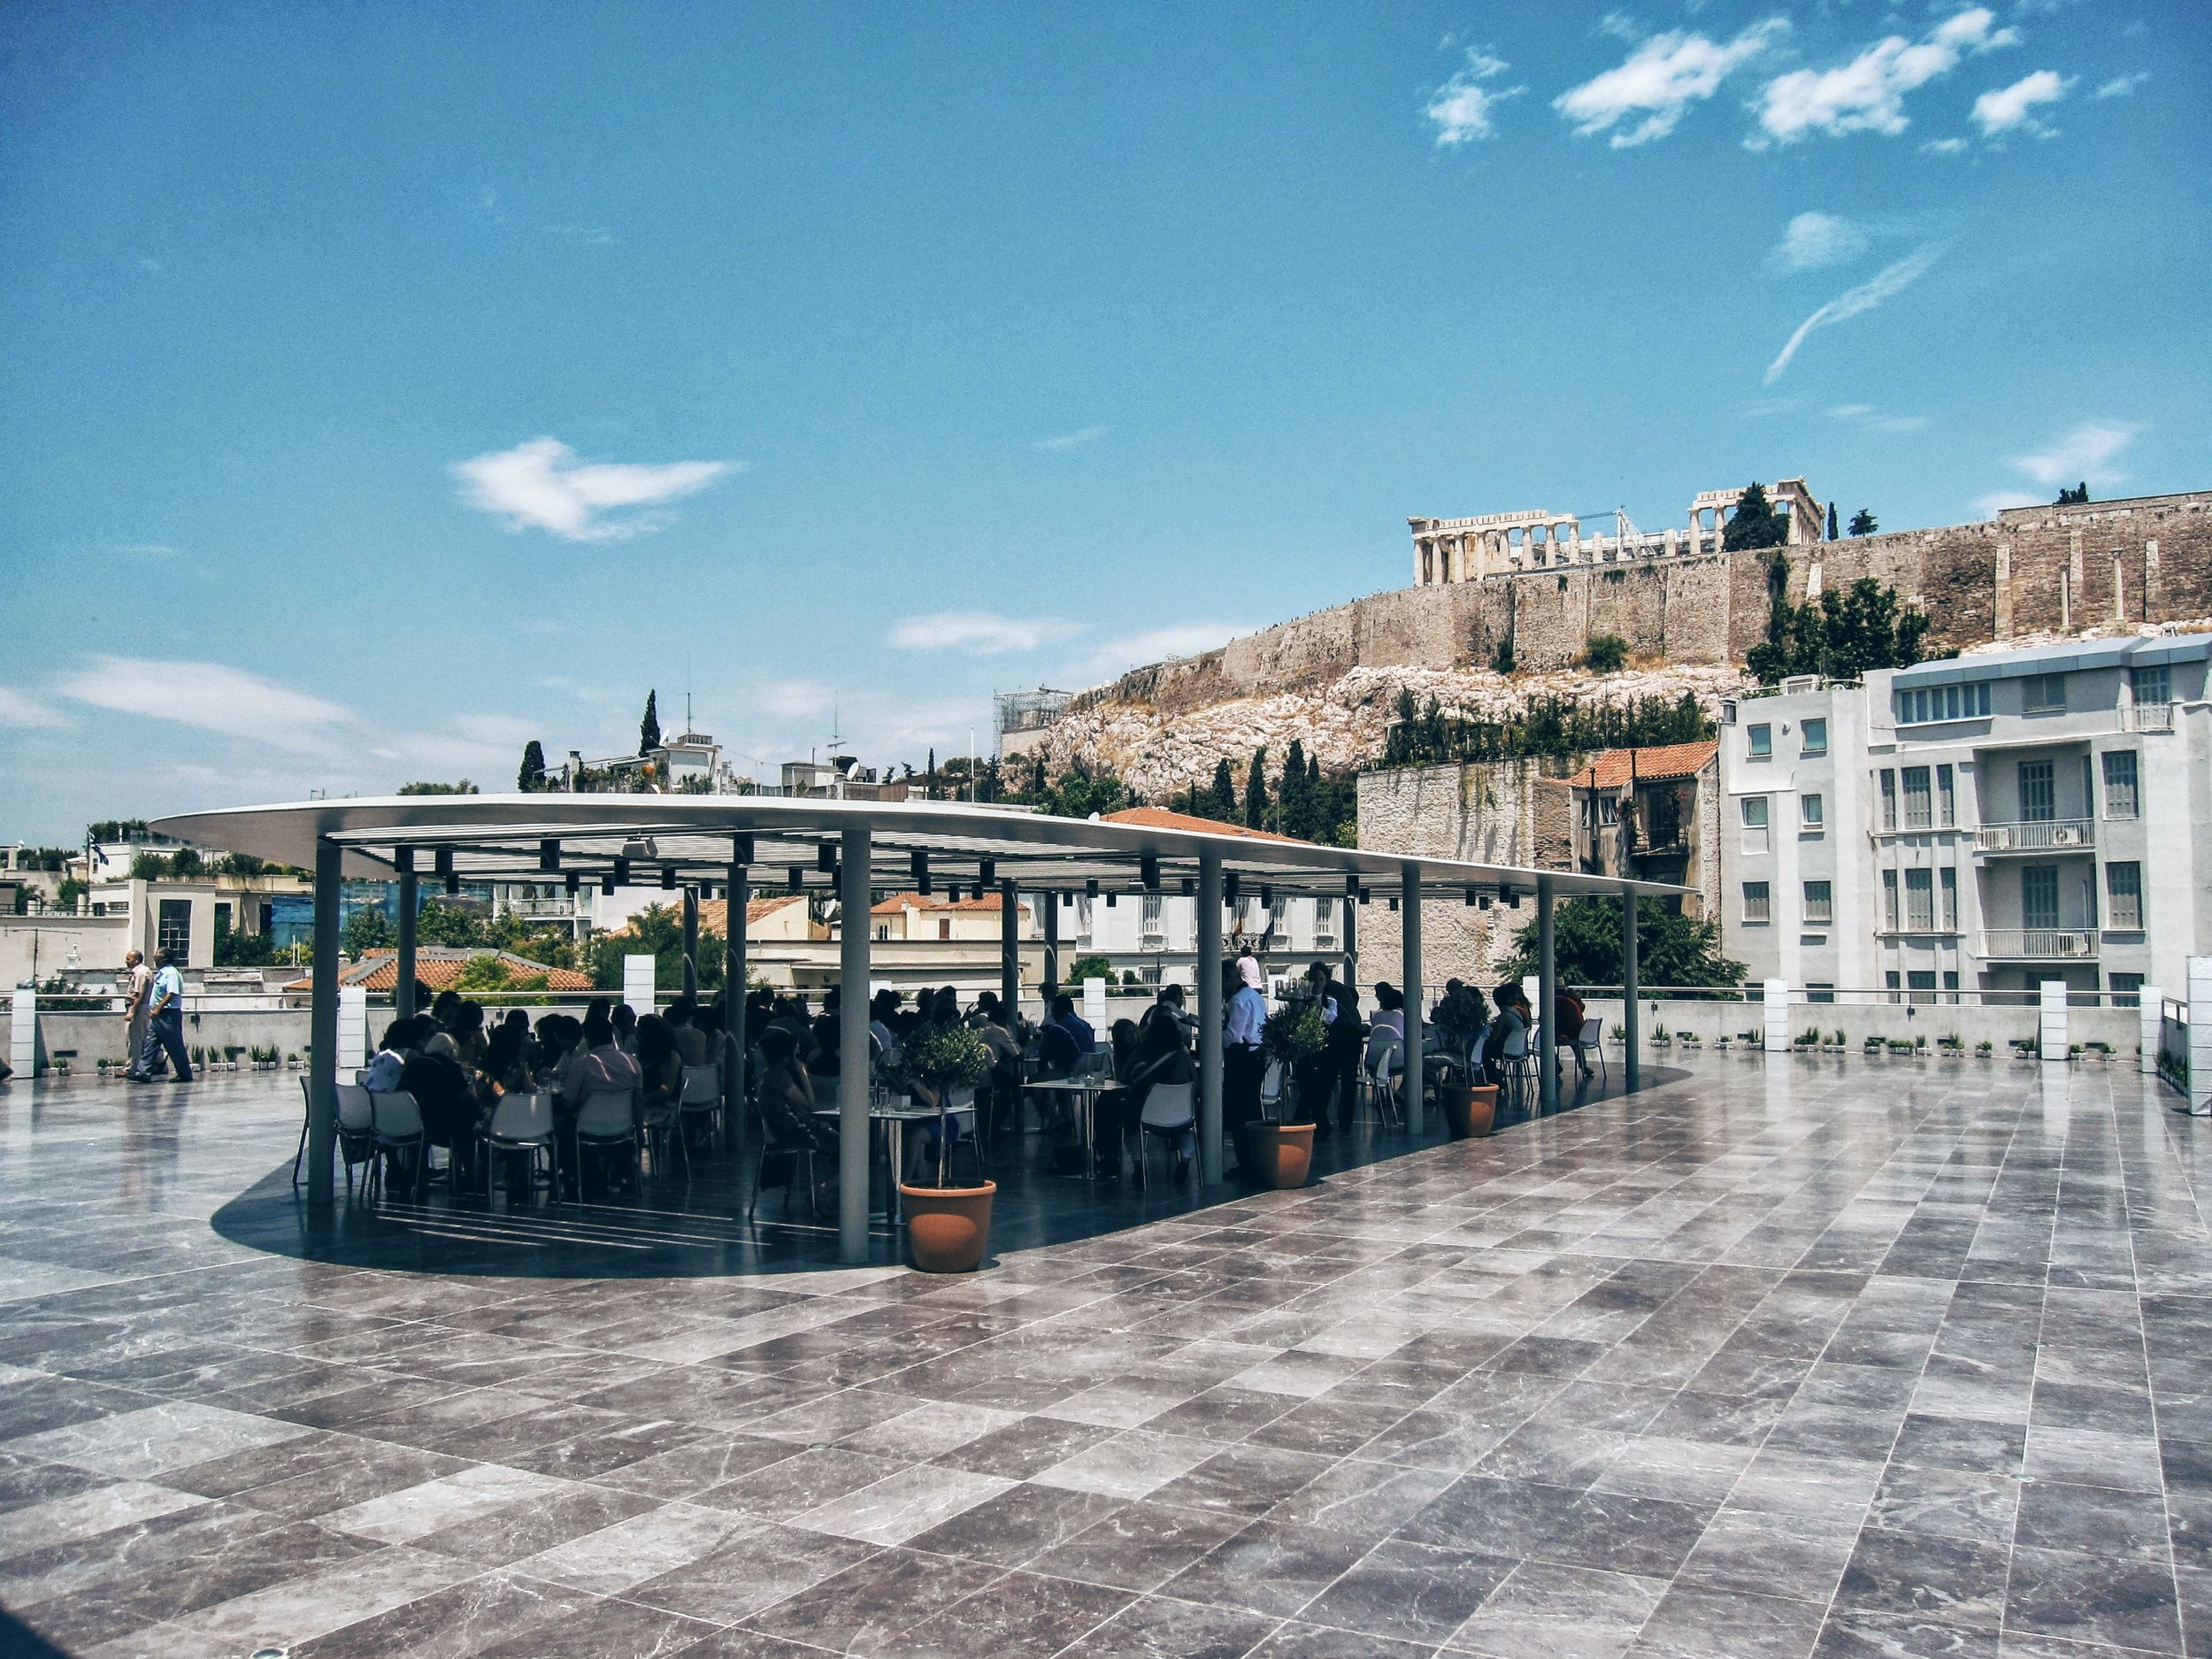 The terrace at the Acropolis Museum directly facing the Parthenon